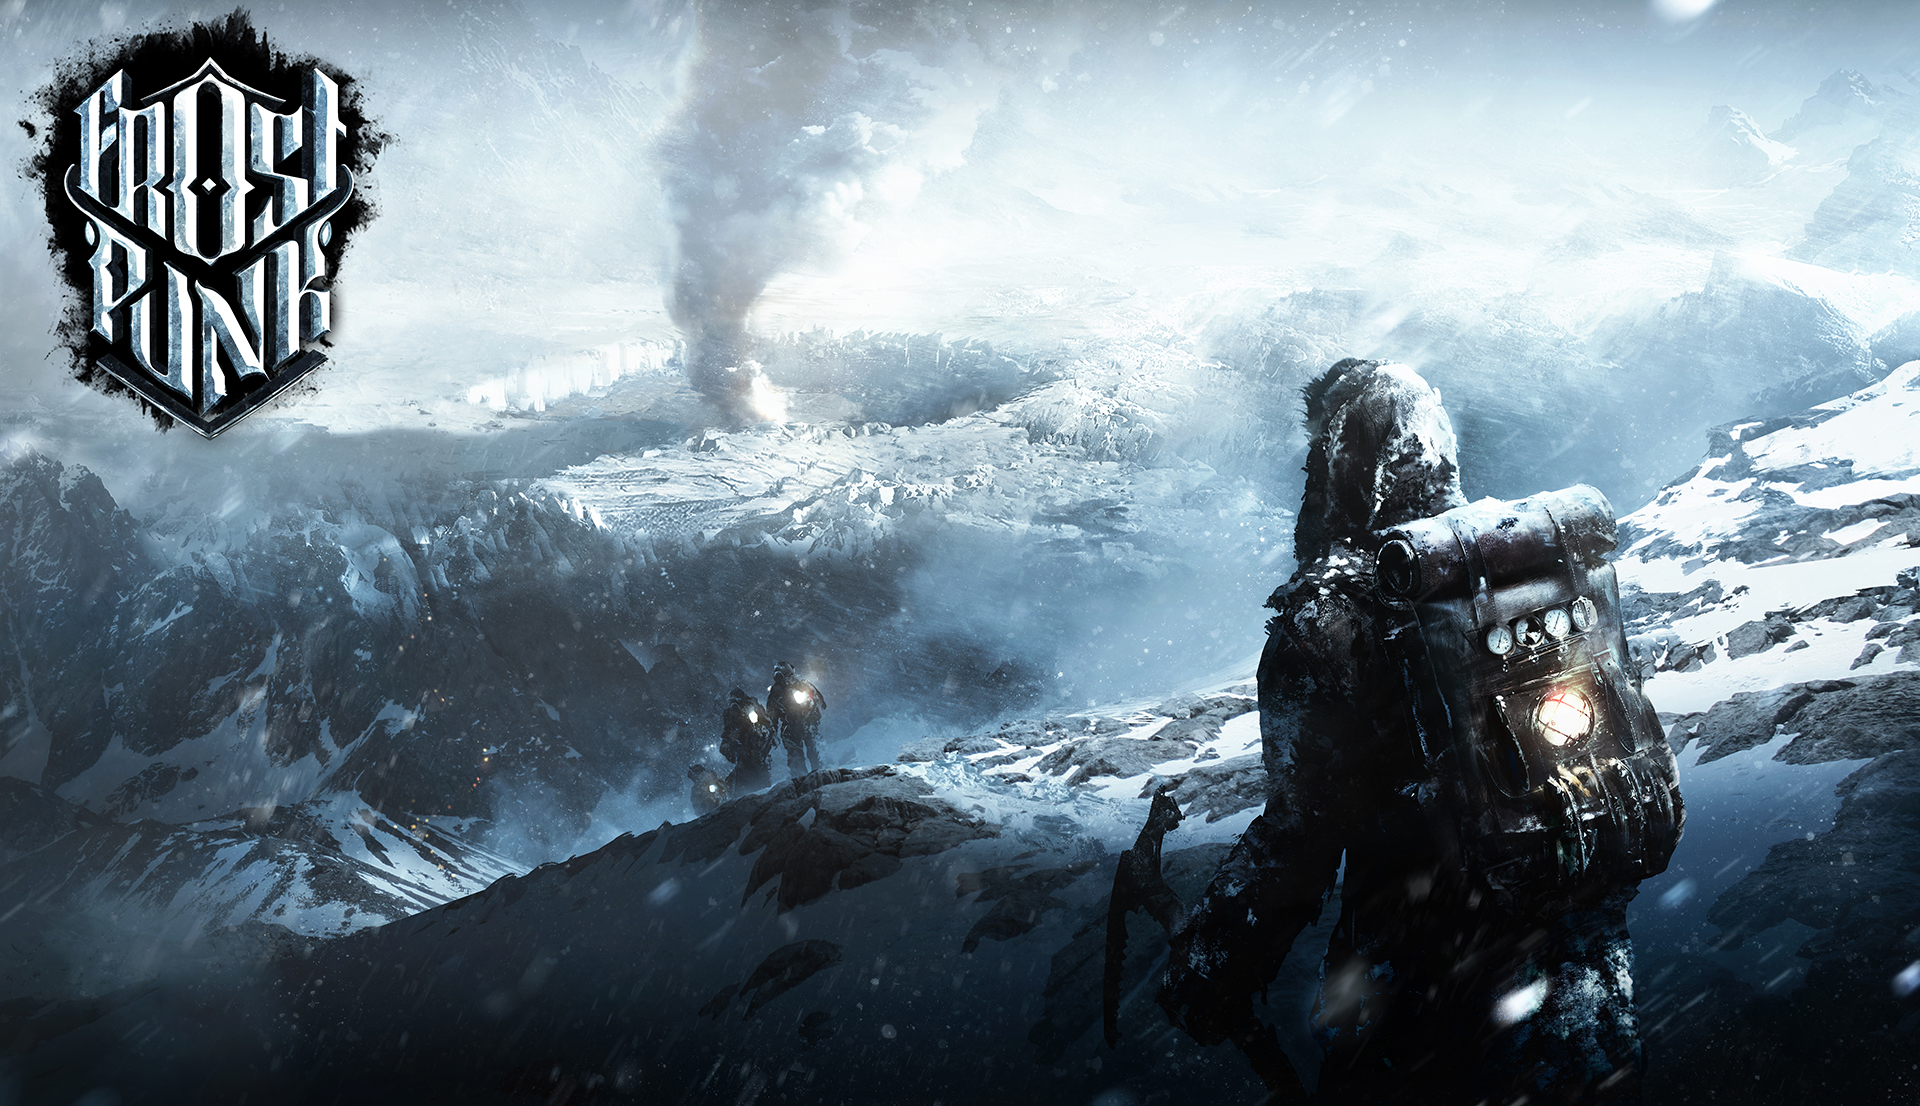 Frostpunk 2018 Game Wallpapers: This War Of Mine Developers Announce Their New Game, Frostpunk